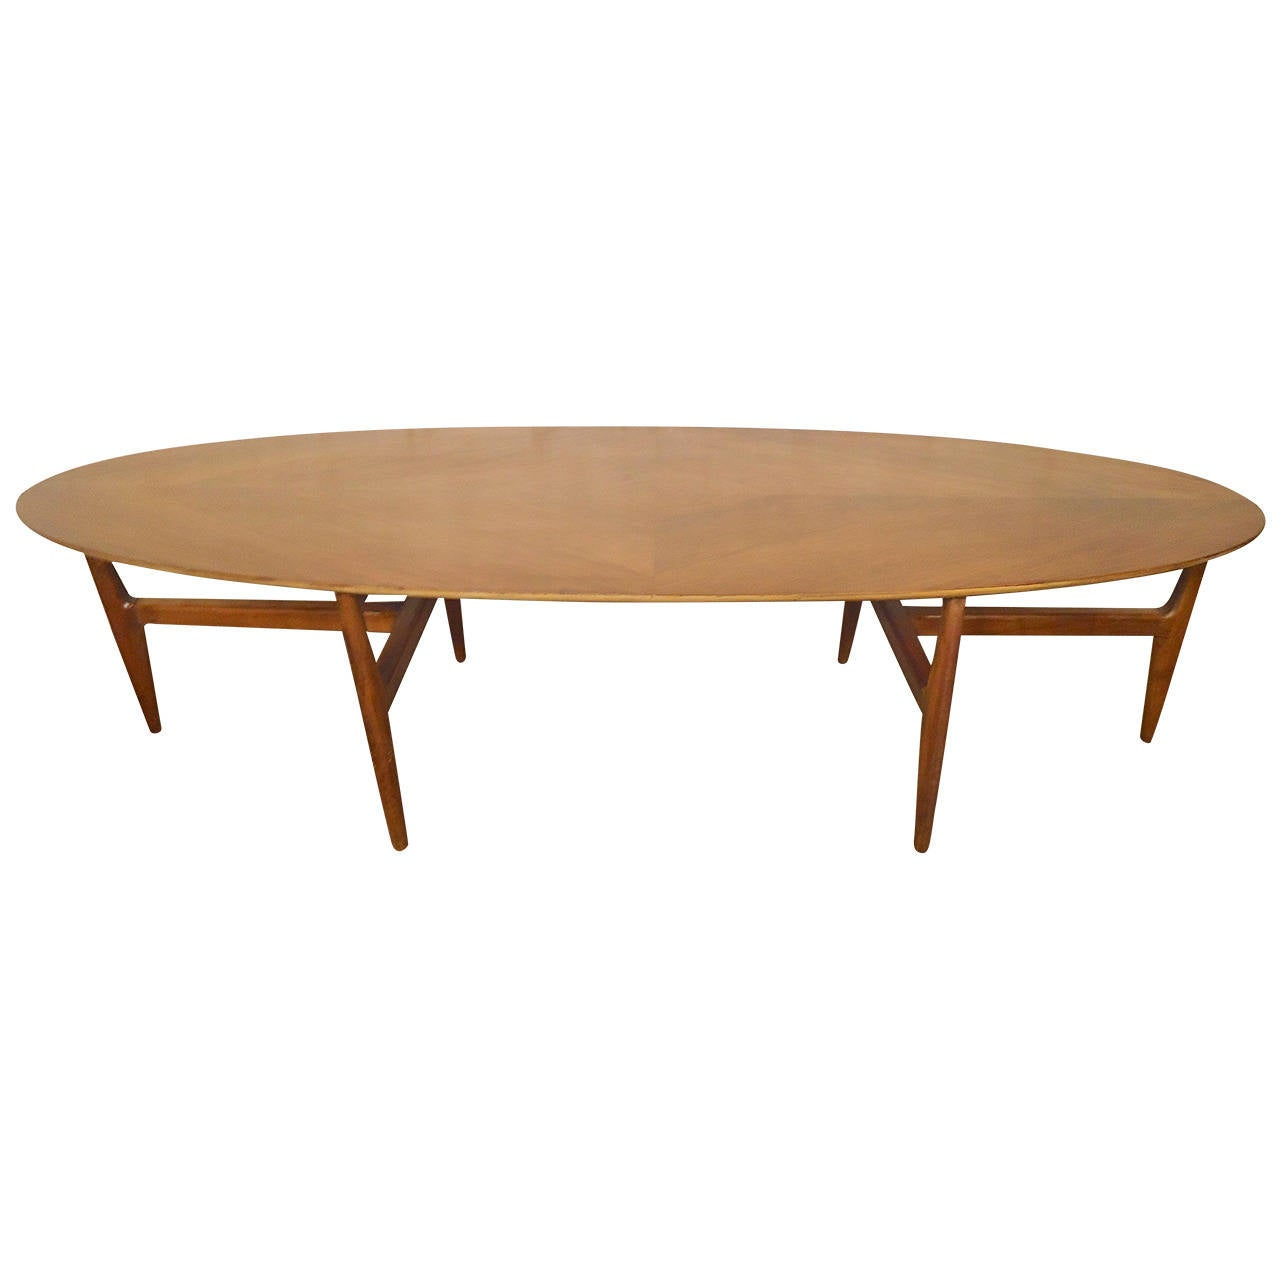 unique oval mid century coffee table at 1stdibs. Black Bedroom Furniture Sets. Home Design Ideas